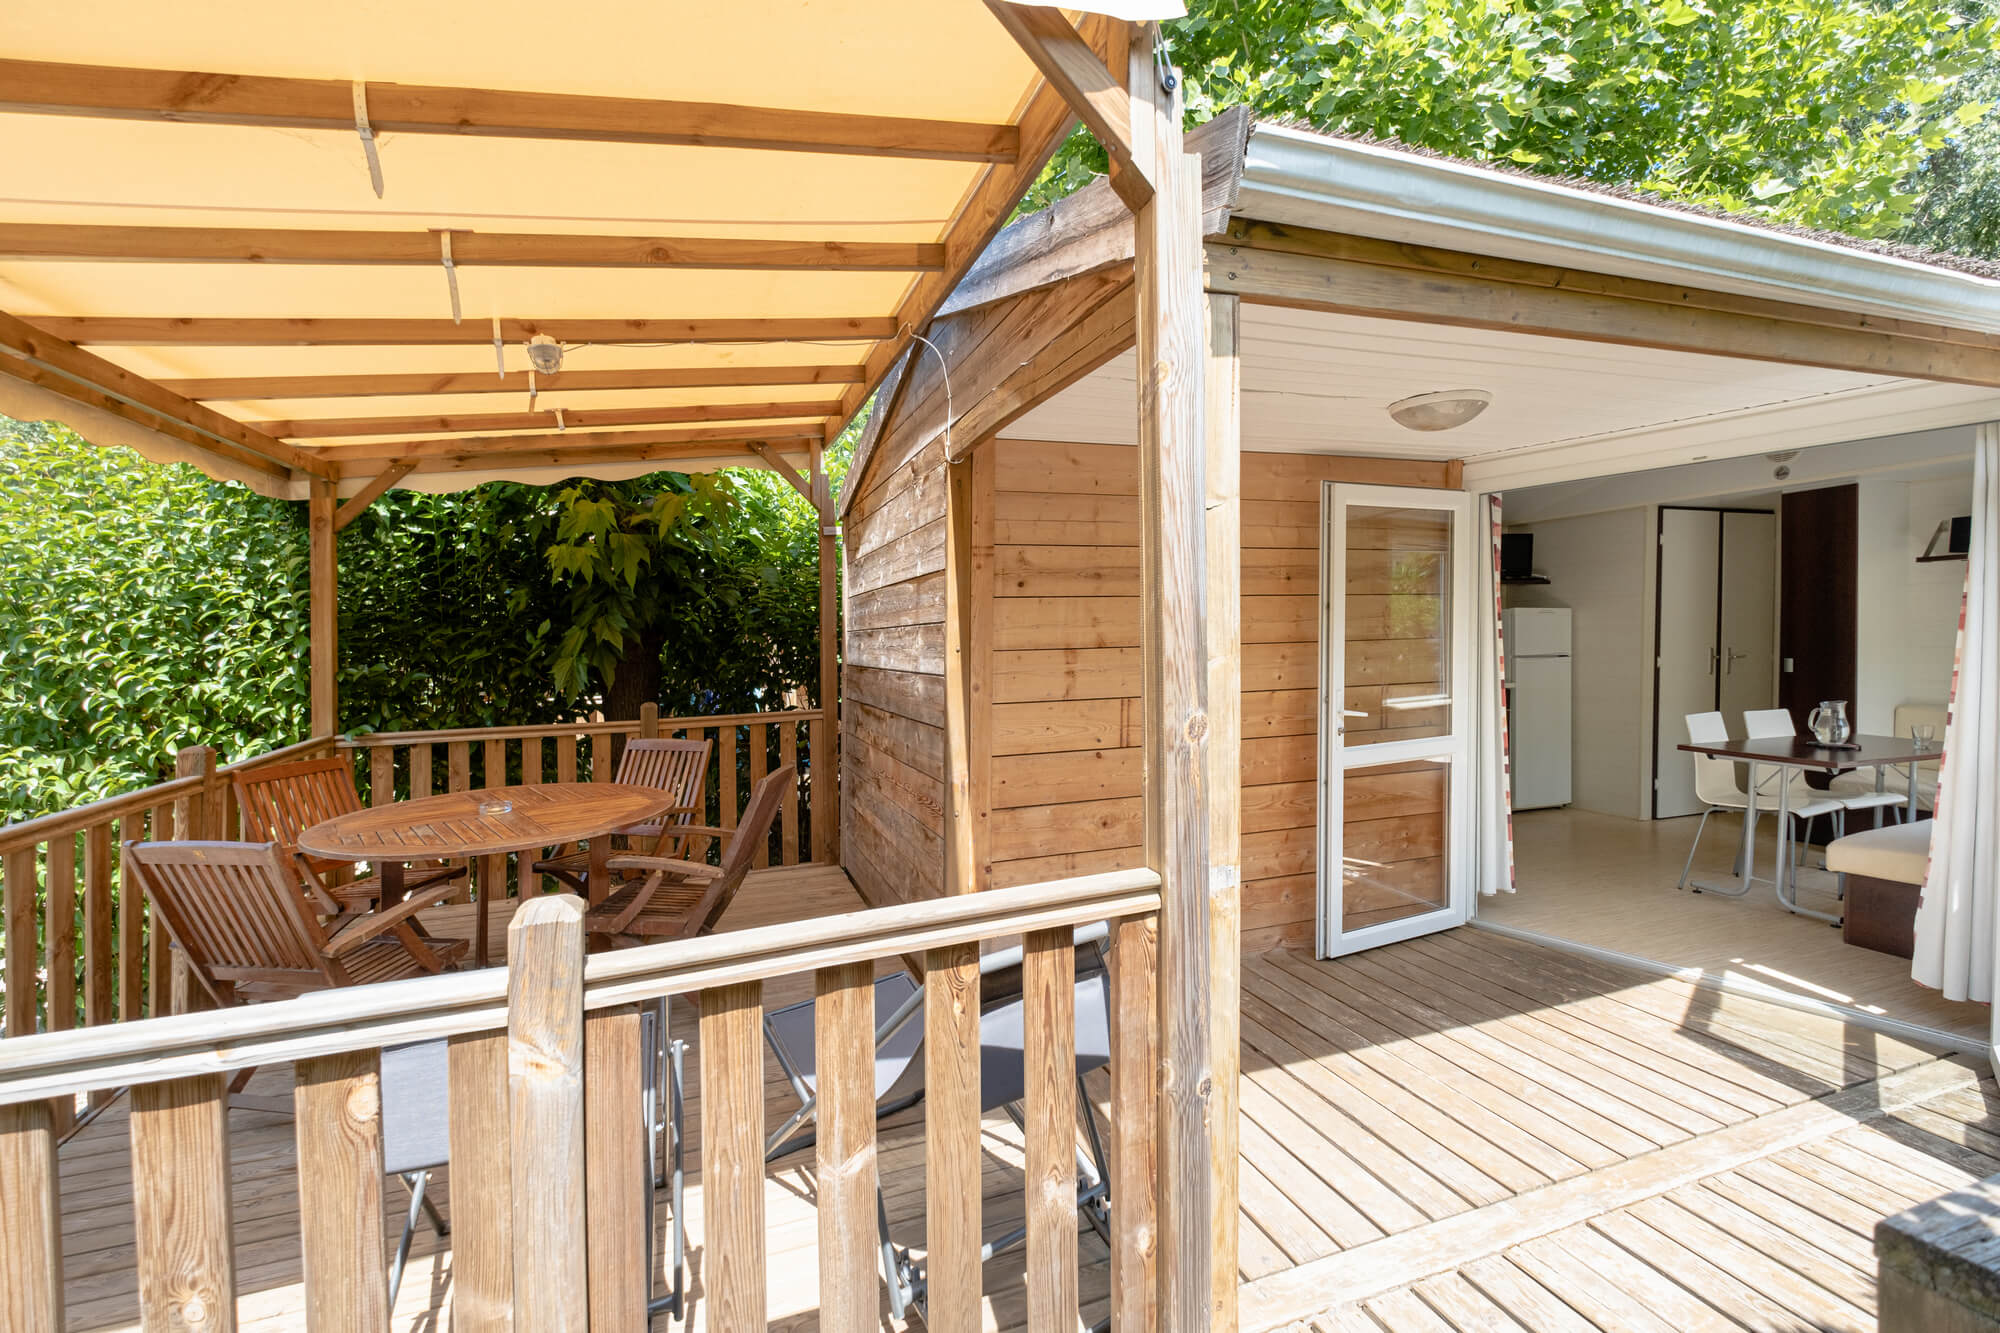 mobile home rental in Auribeau-sur-Siagne Cannes countryside on countryside boston homes, countryside landscaping, countryside cottages, countryside churches, countryside sheds,